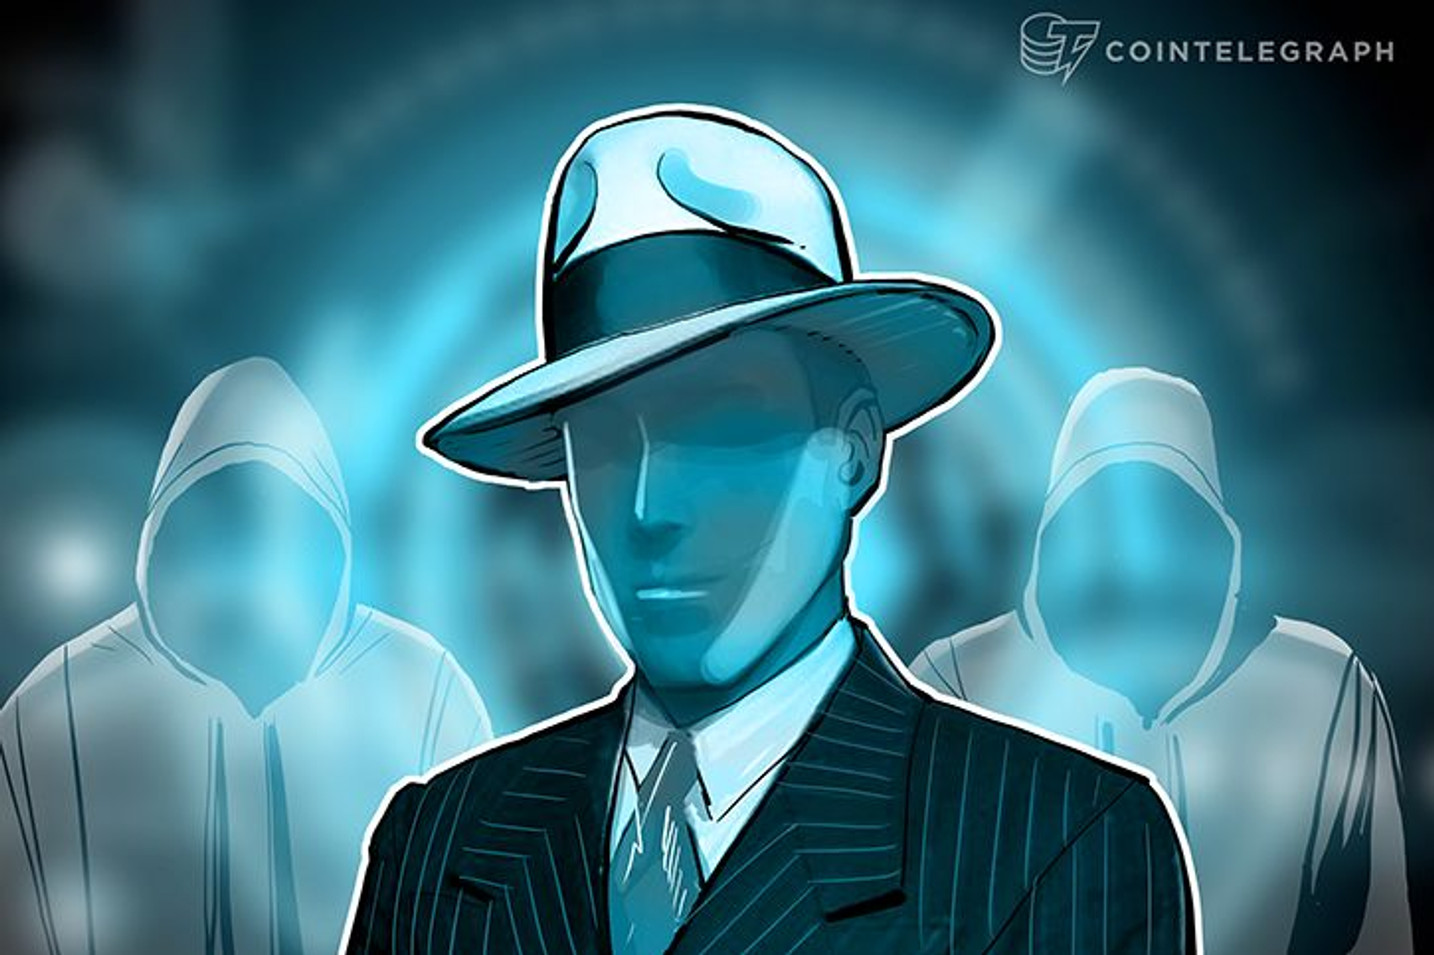 Over $6.2 Mln In Crypto Assets Lost To Fraud, Hacks In Japan Last Year